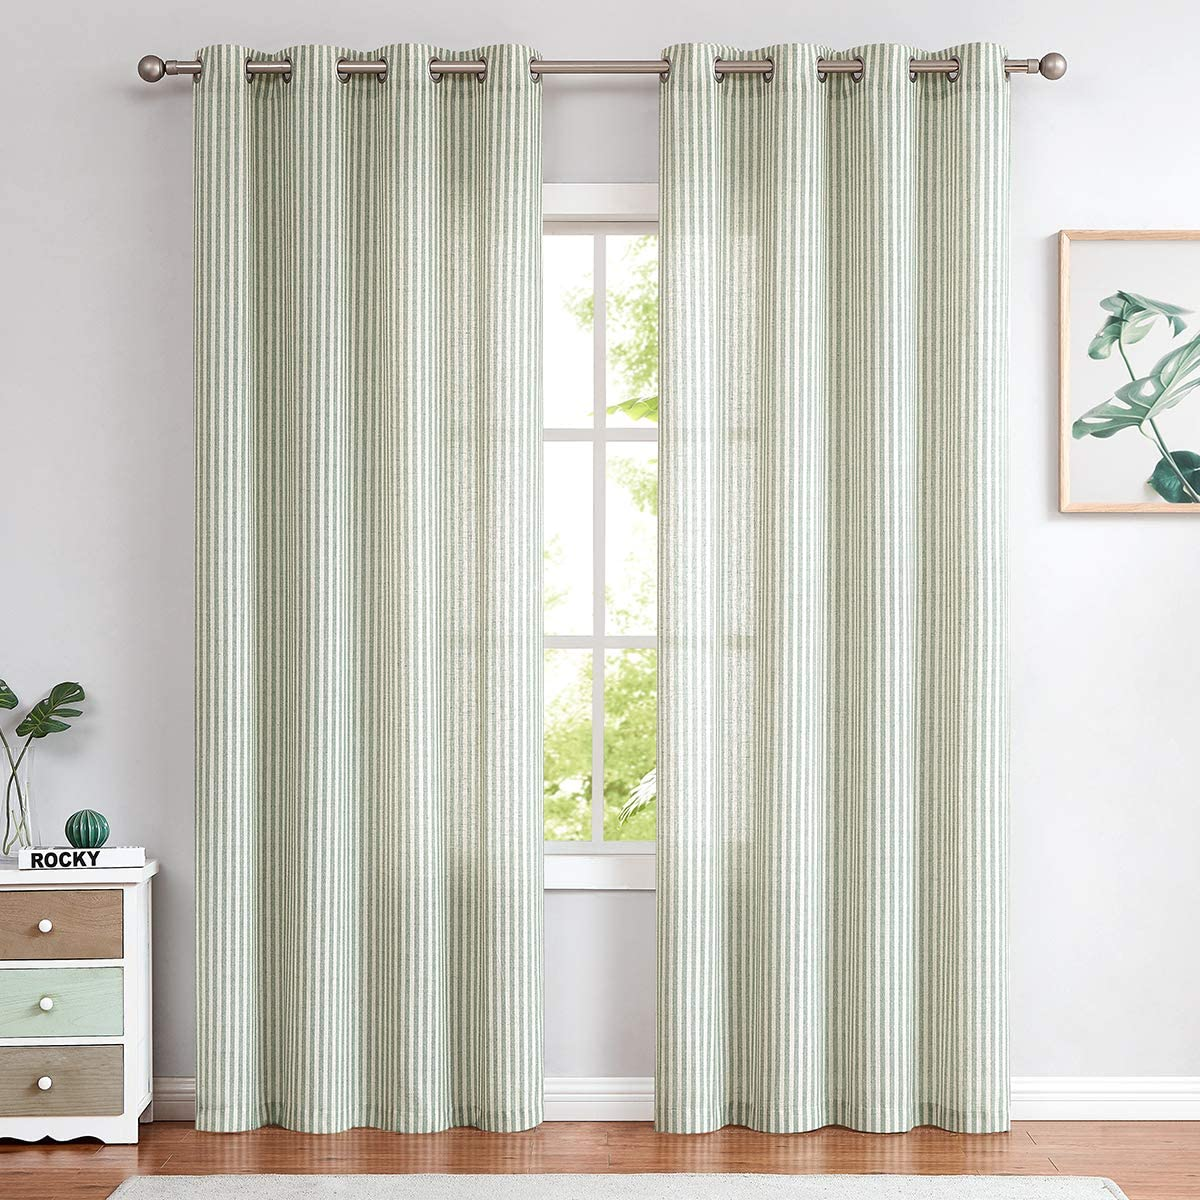 Linen Textured Curtains for Living Room Stripe Pattern Grommet Top Light Reducing Window Treatment Set for Bedroom 2 Panels 84 inch Long Sage